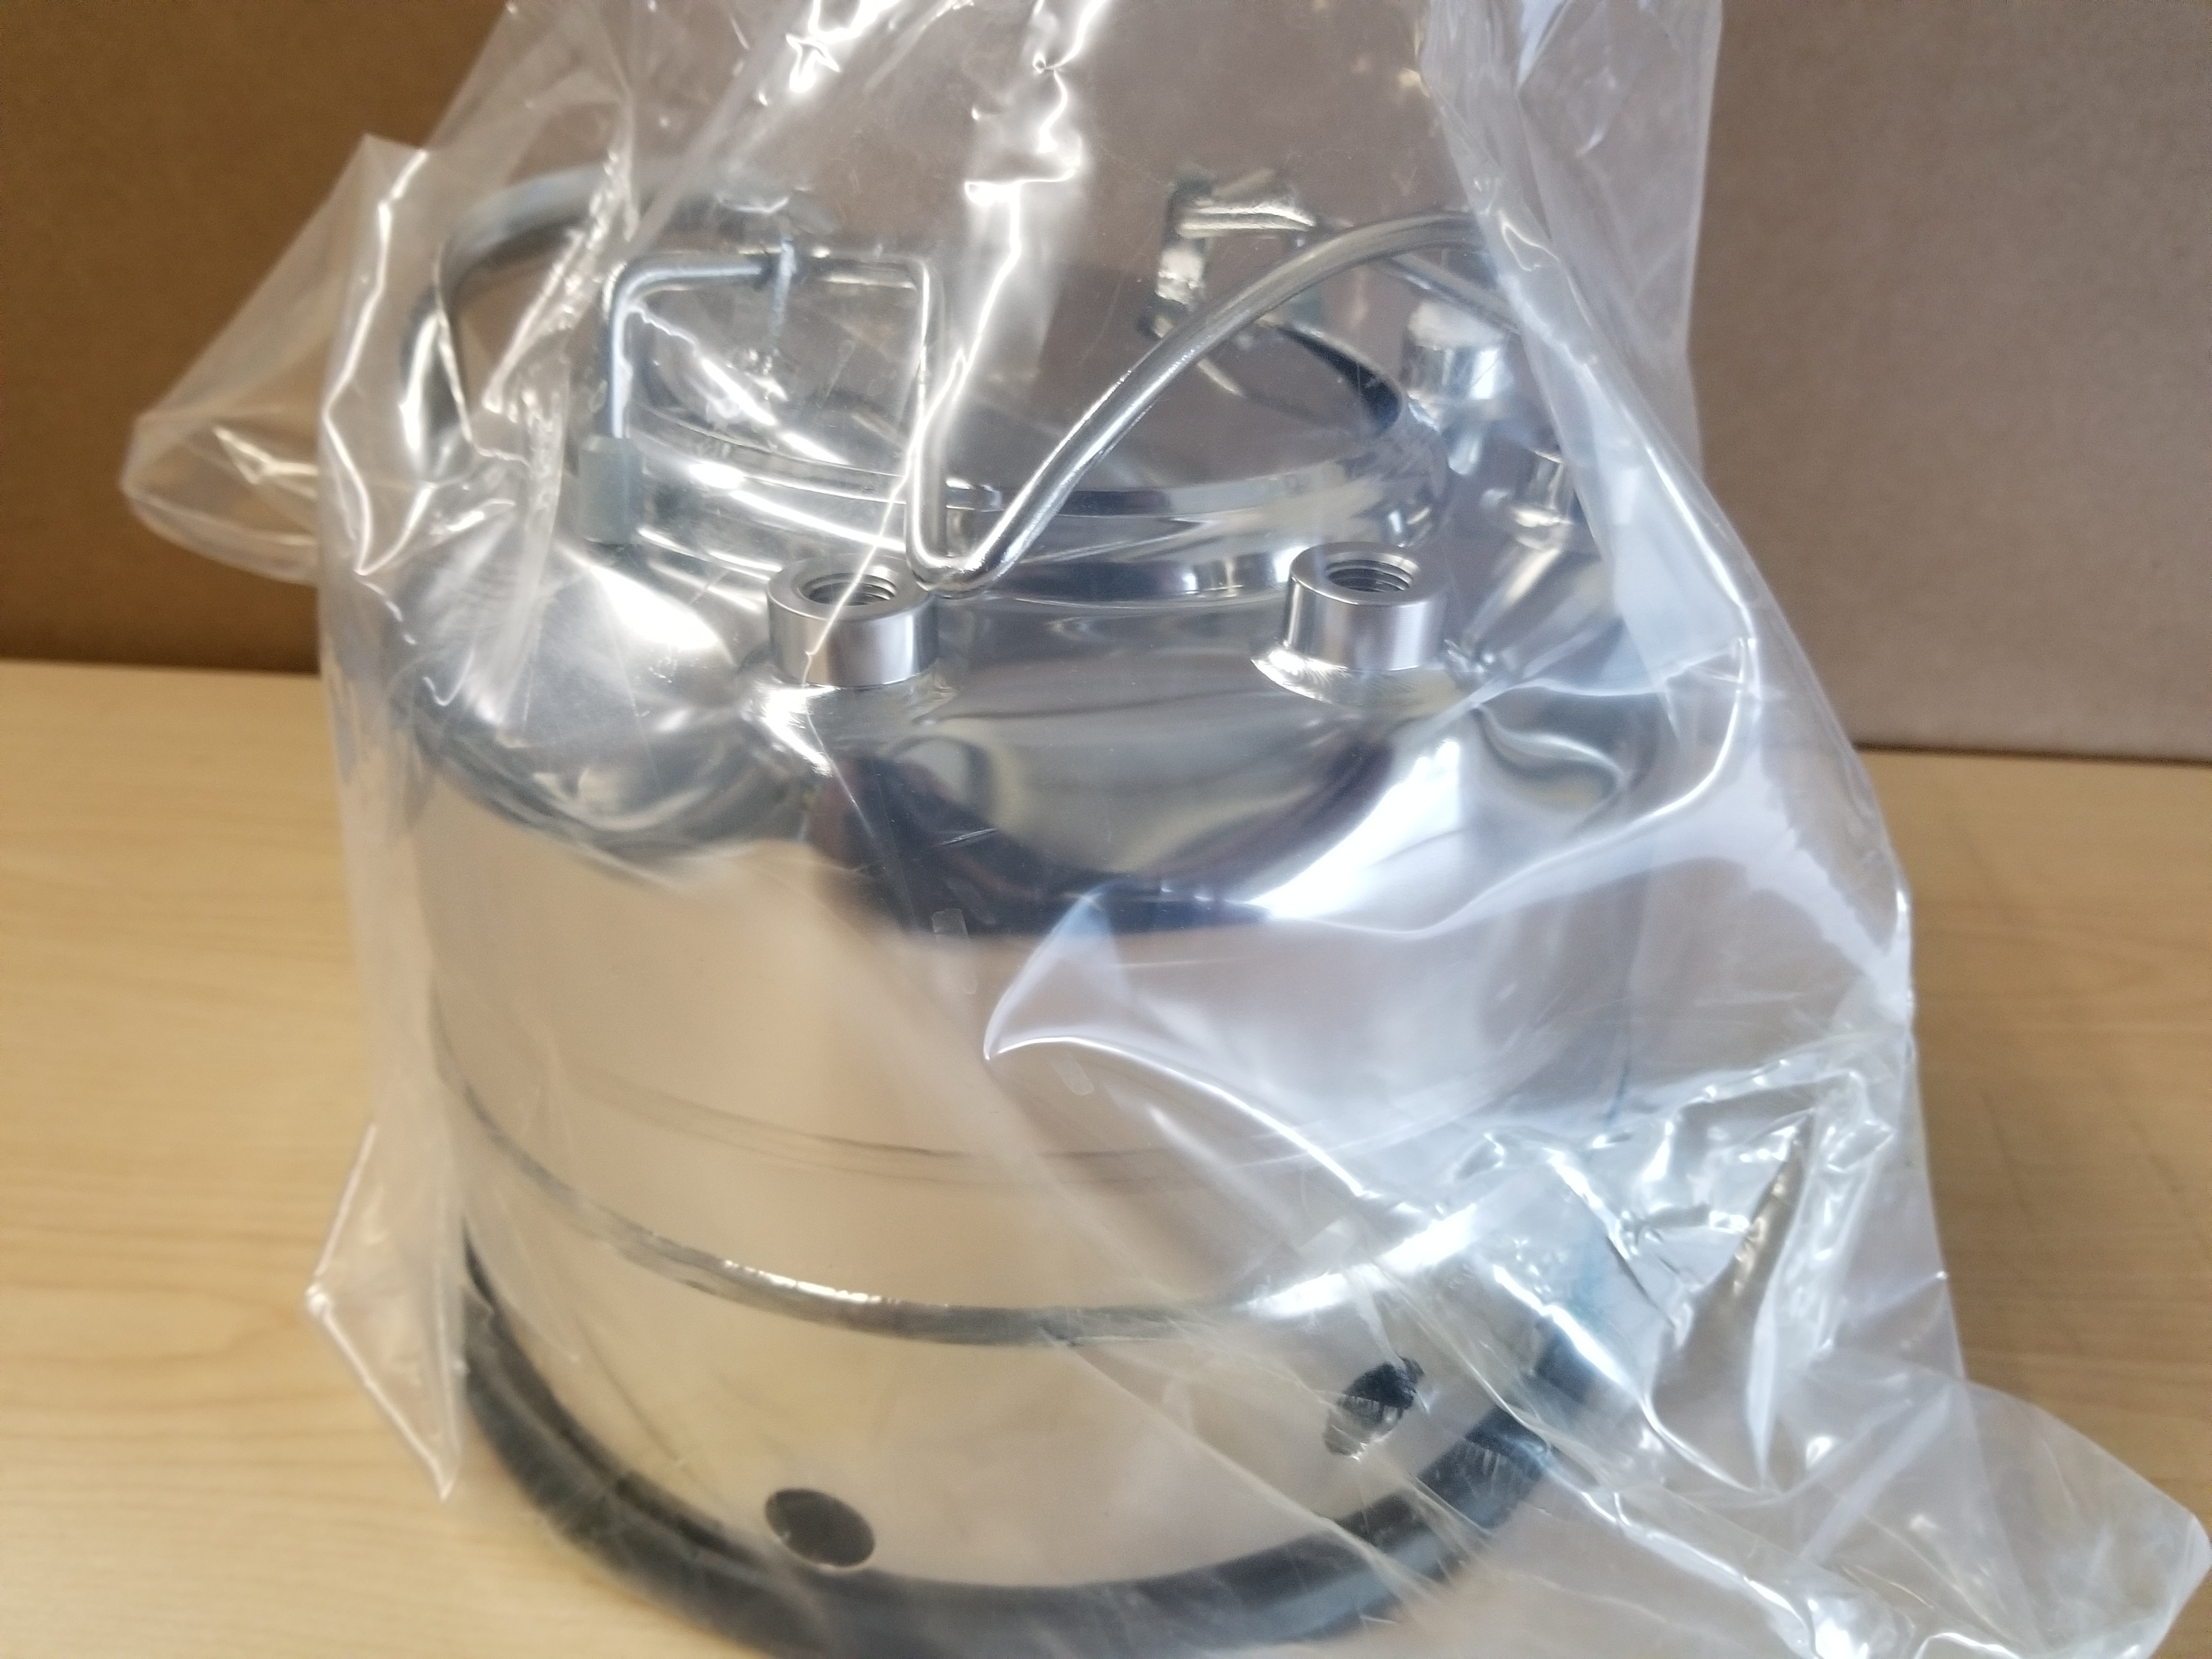 New Alloy Products 316L Stainless Steel Pressure Vessel - Image 2 of 12